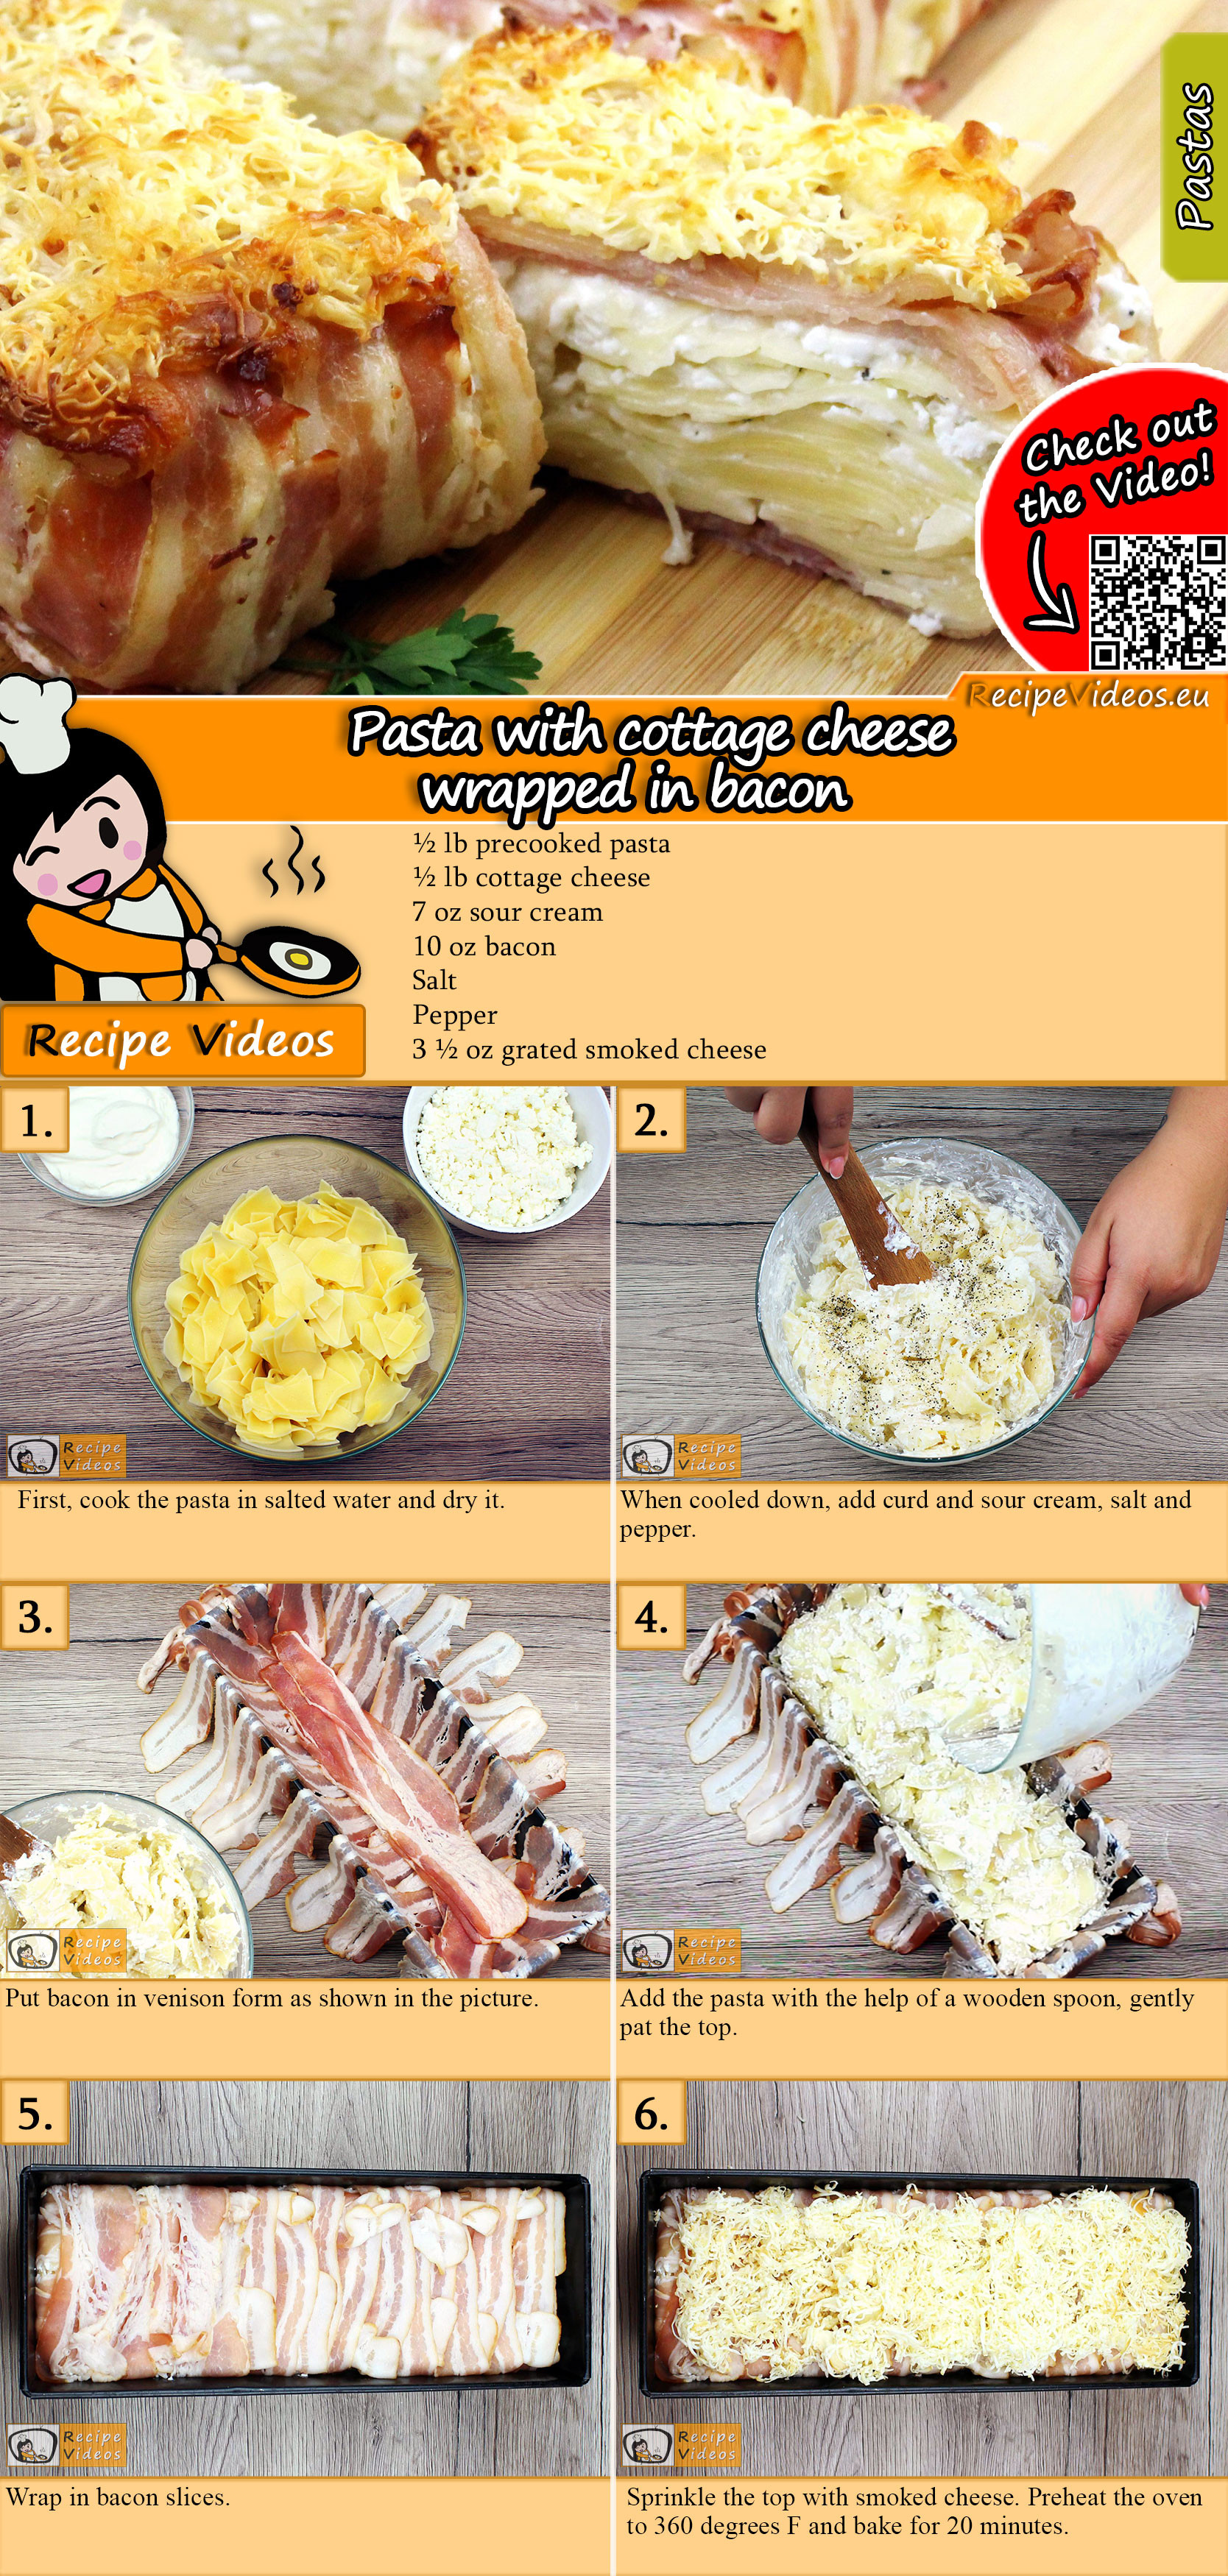 Pasta with cottage cheese wrapped in bacon recipe with video